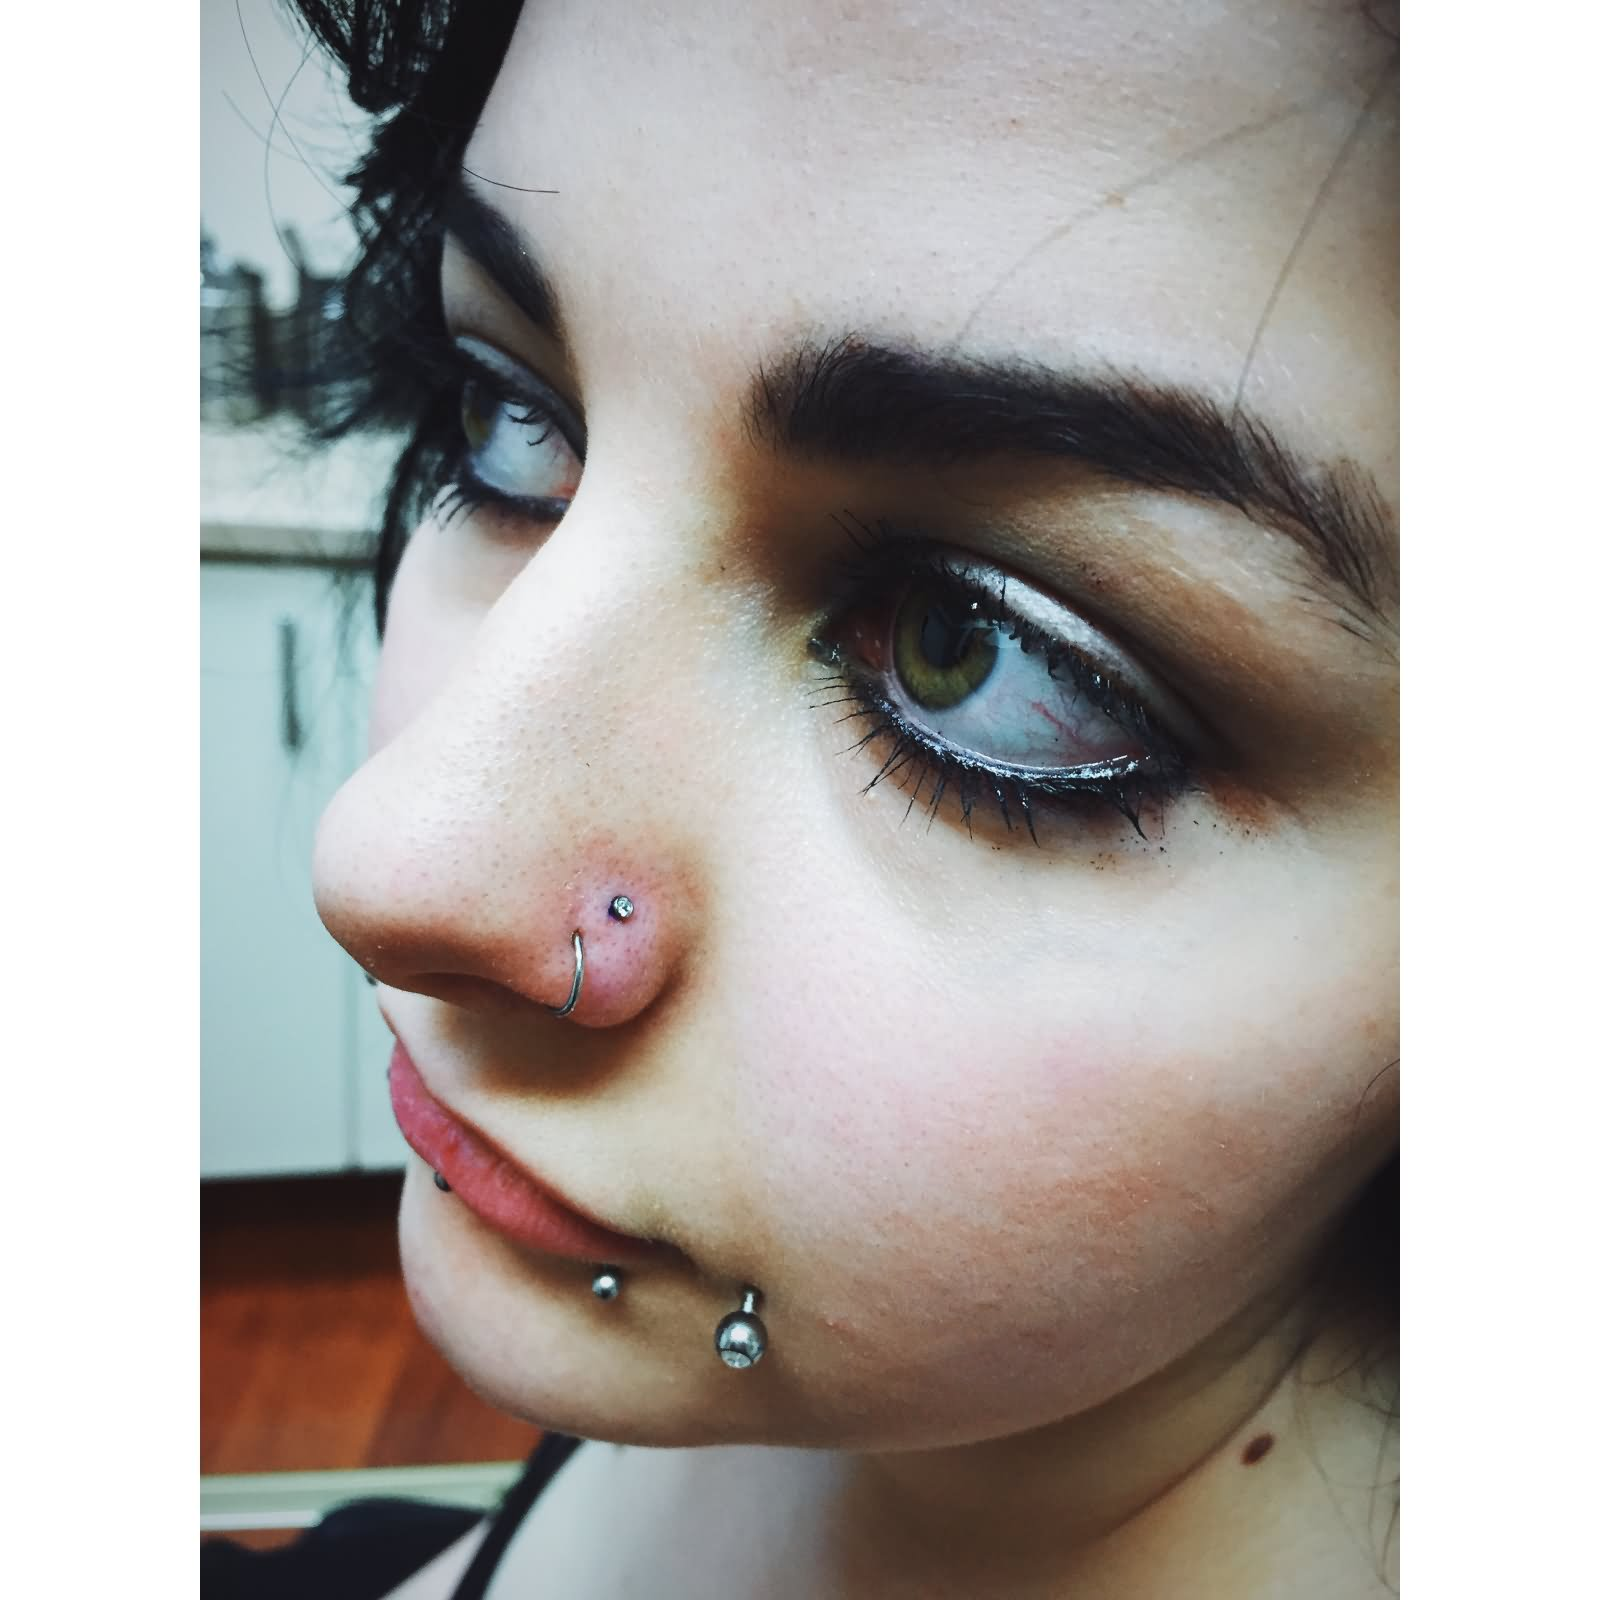 67+ awesome double nose piercings